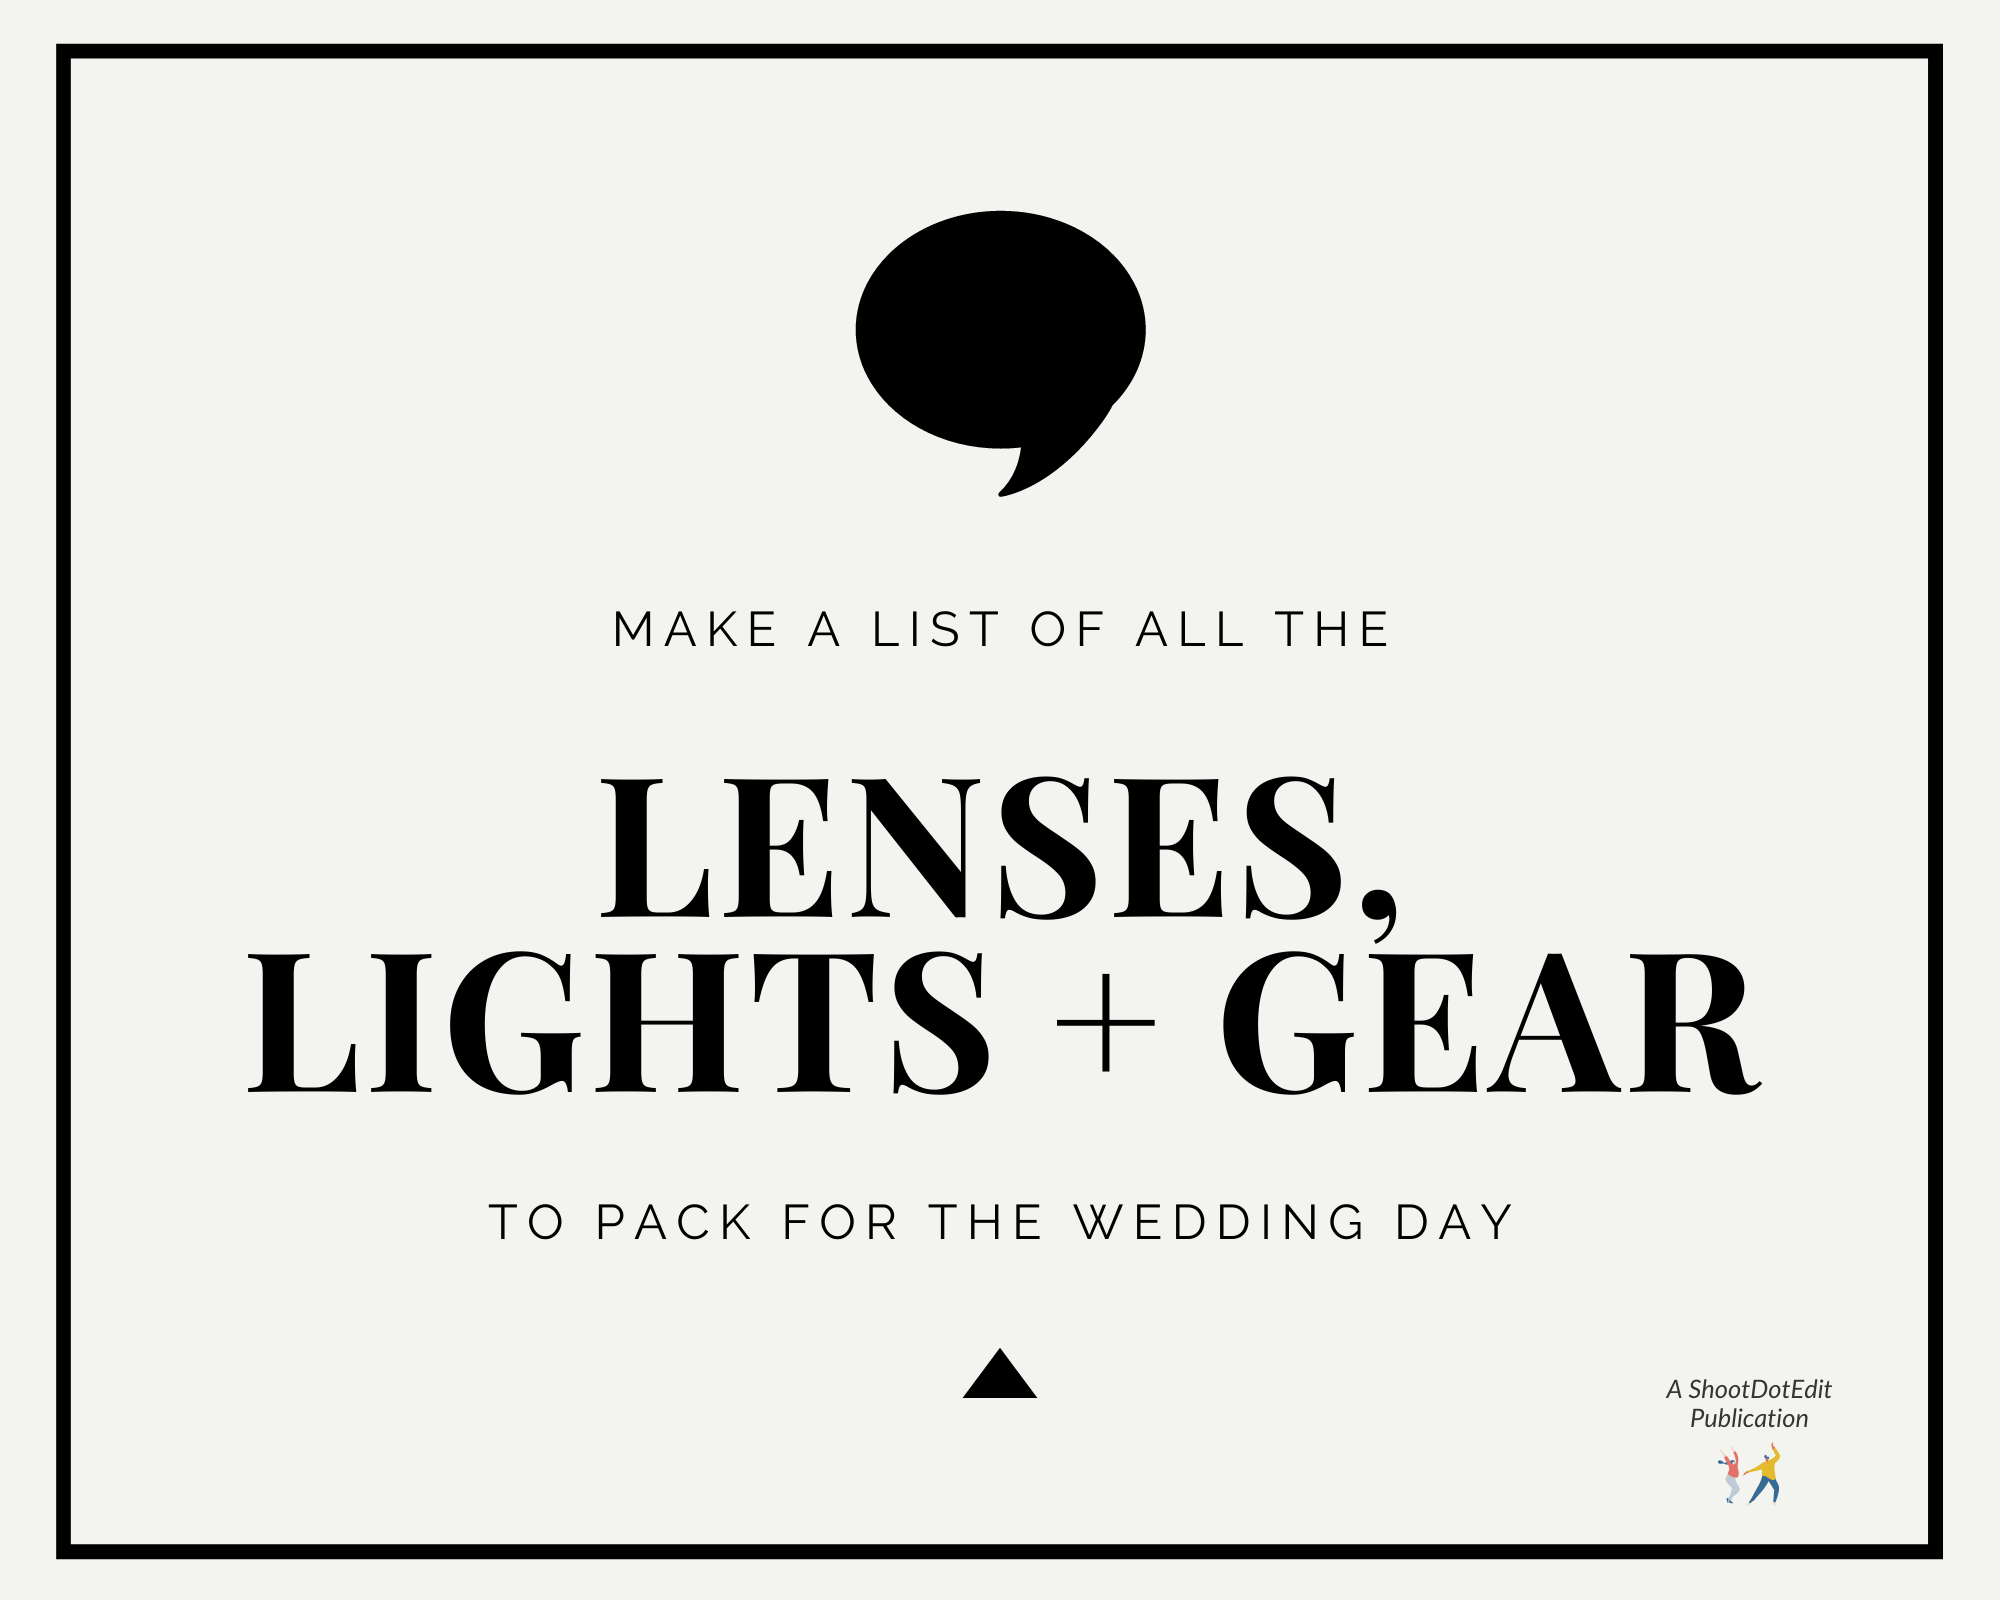 Infographic stating make a list of all the lenses, lights plus gear to pack for the wedding day